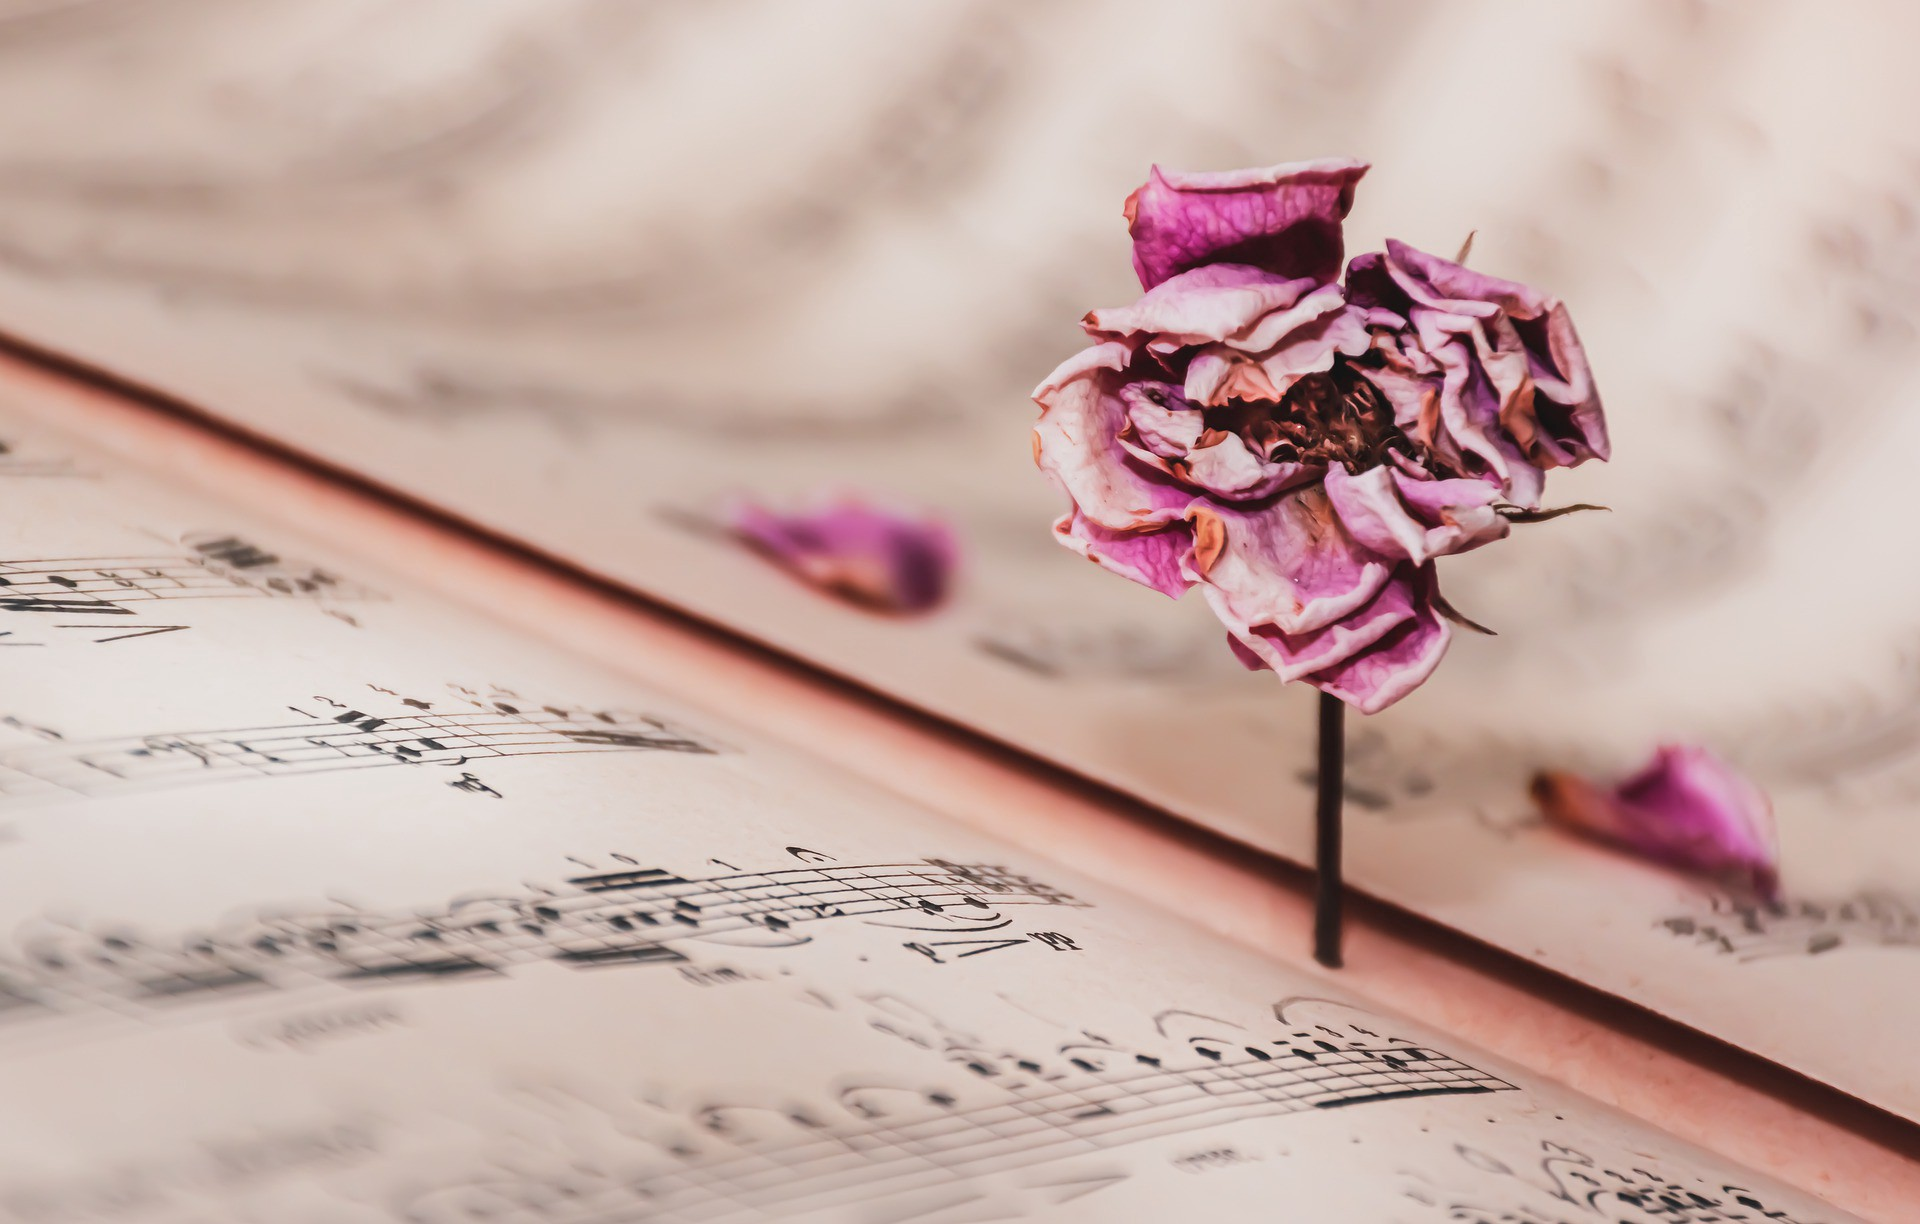 Decaying flower on top of sheet music